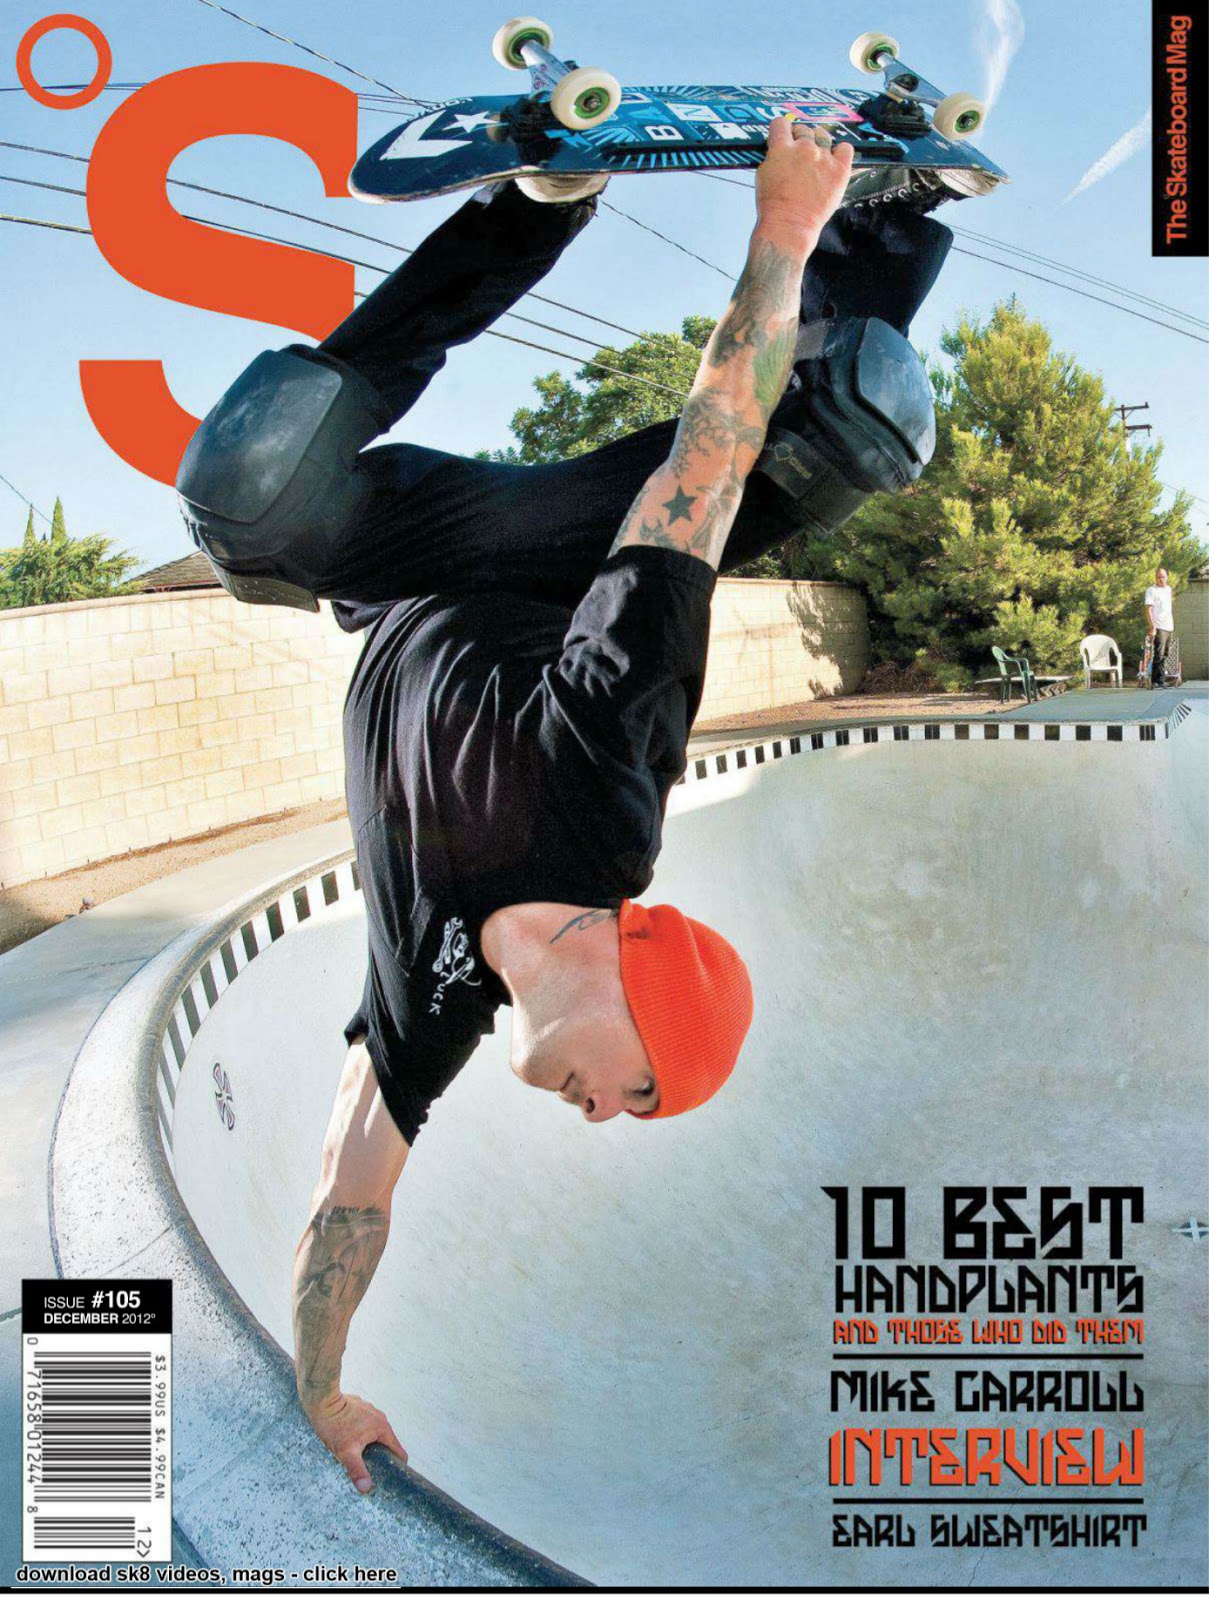 f6cecb81441 Skateboard Magazine Archive  The Skateboard Mag December 2012